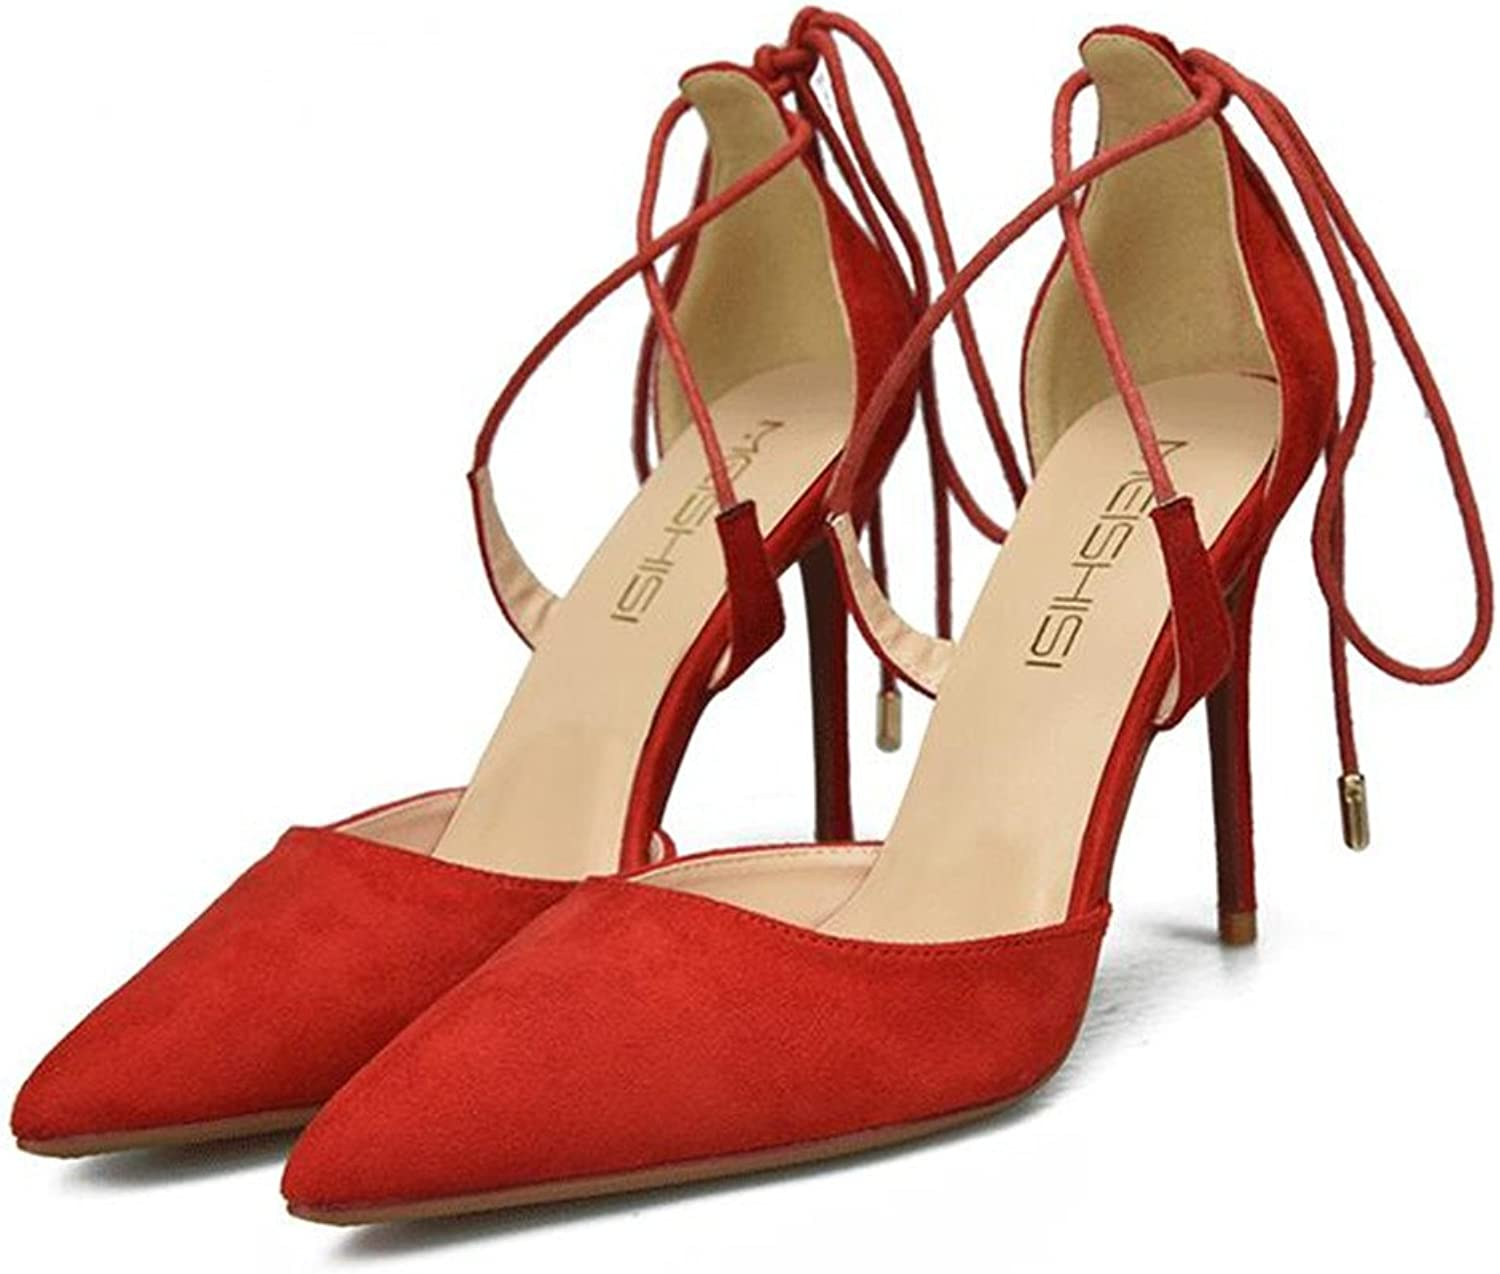 XIUWU Women's Suede Lace up Pumps Party Sandles High Heels for Ladies